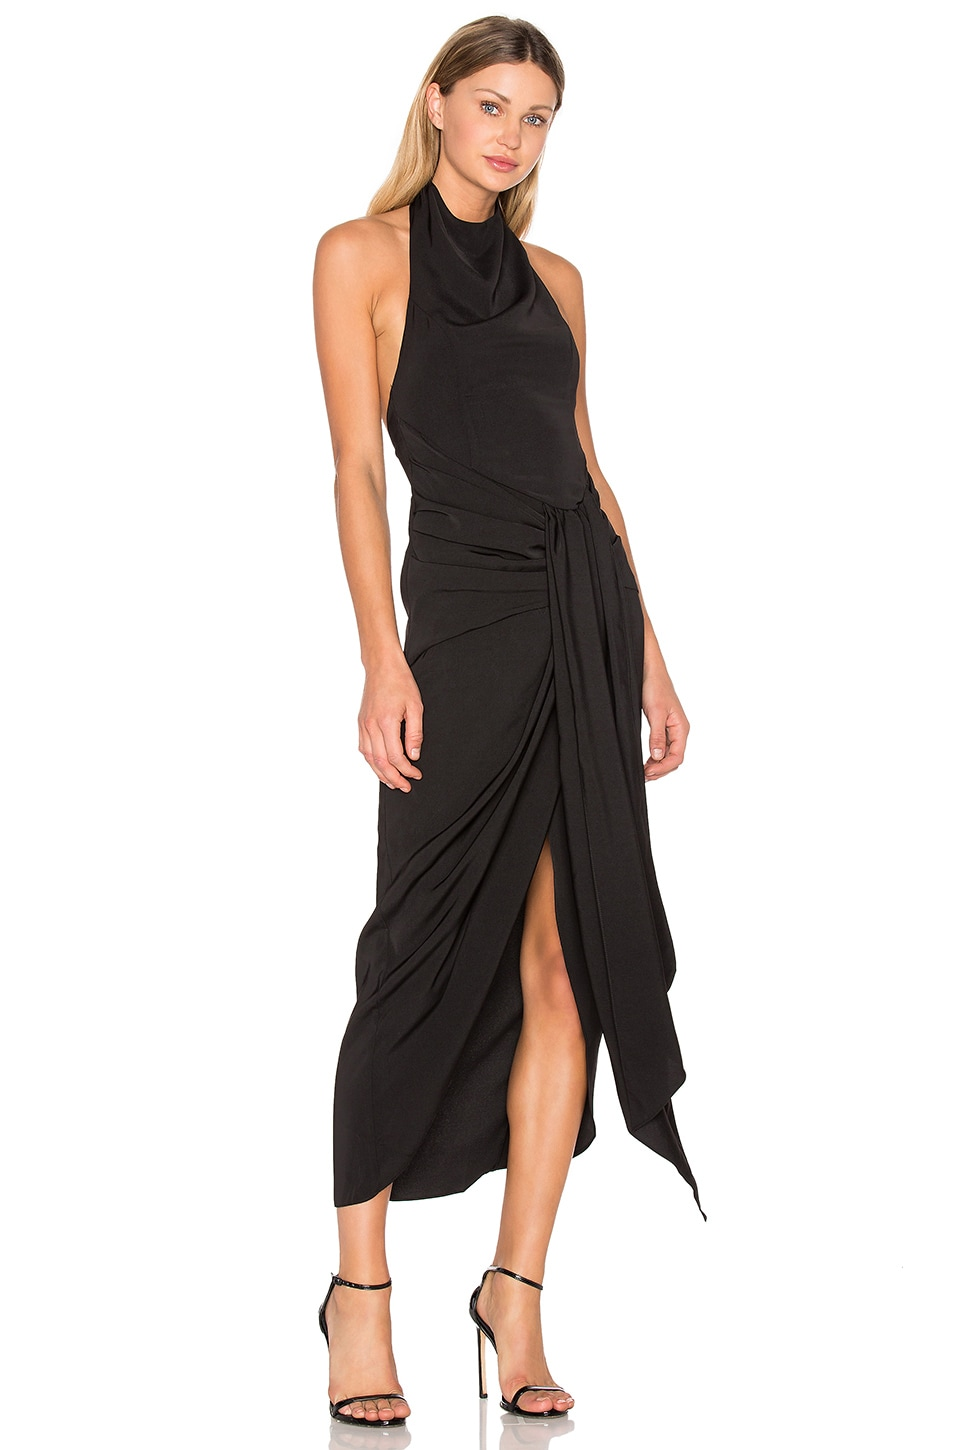 Voltaire Backless Draped Midi Dress by Shona Joy